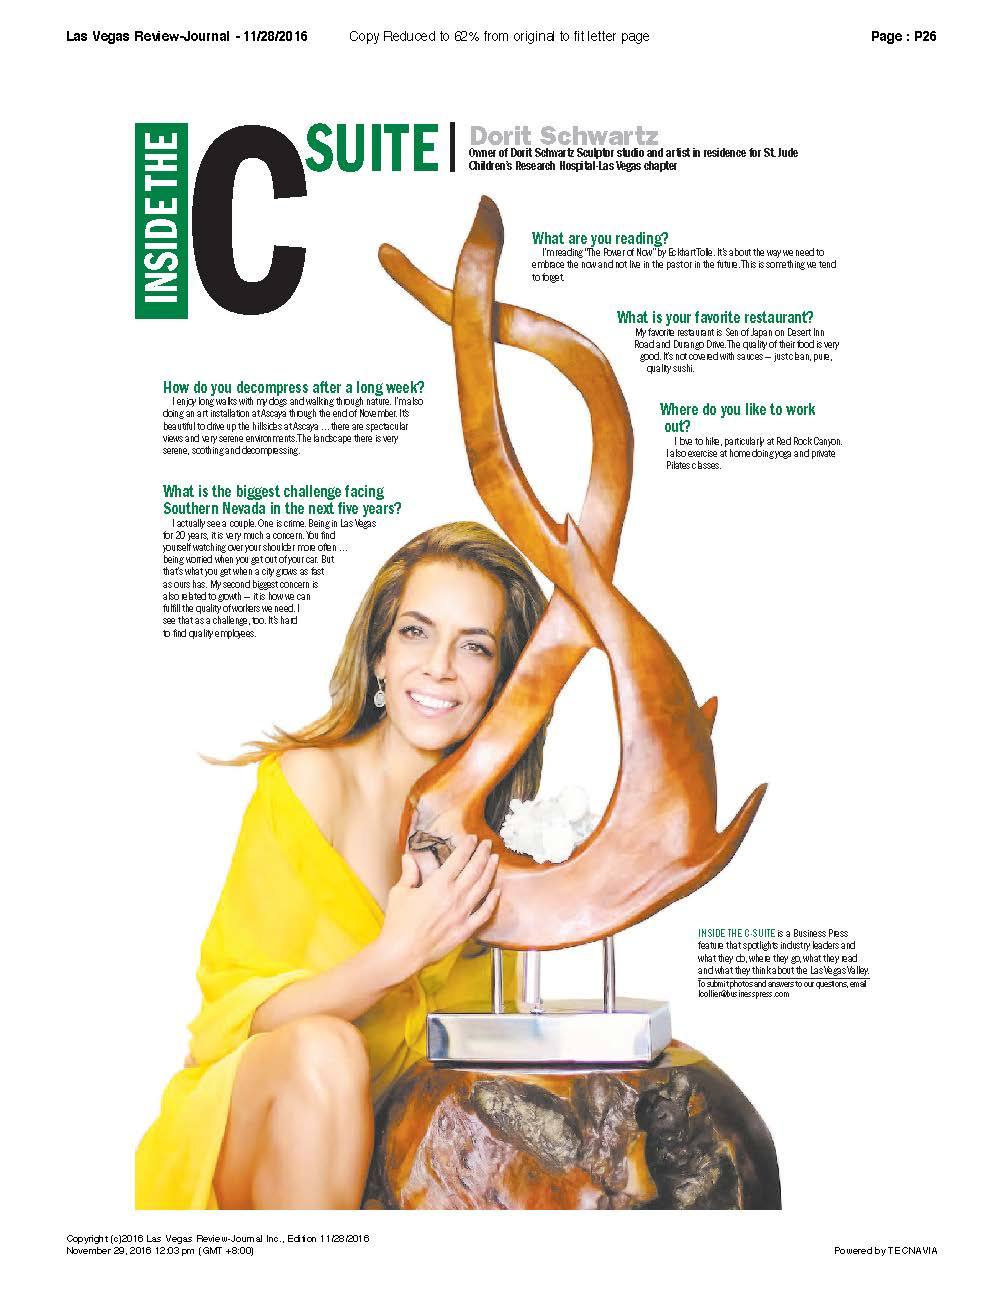 CSuite - Dorit Schwartz in the Las Vegas Review Journal